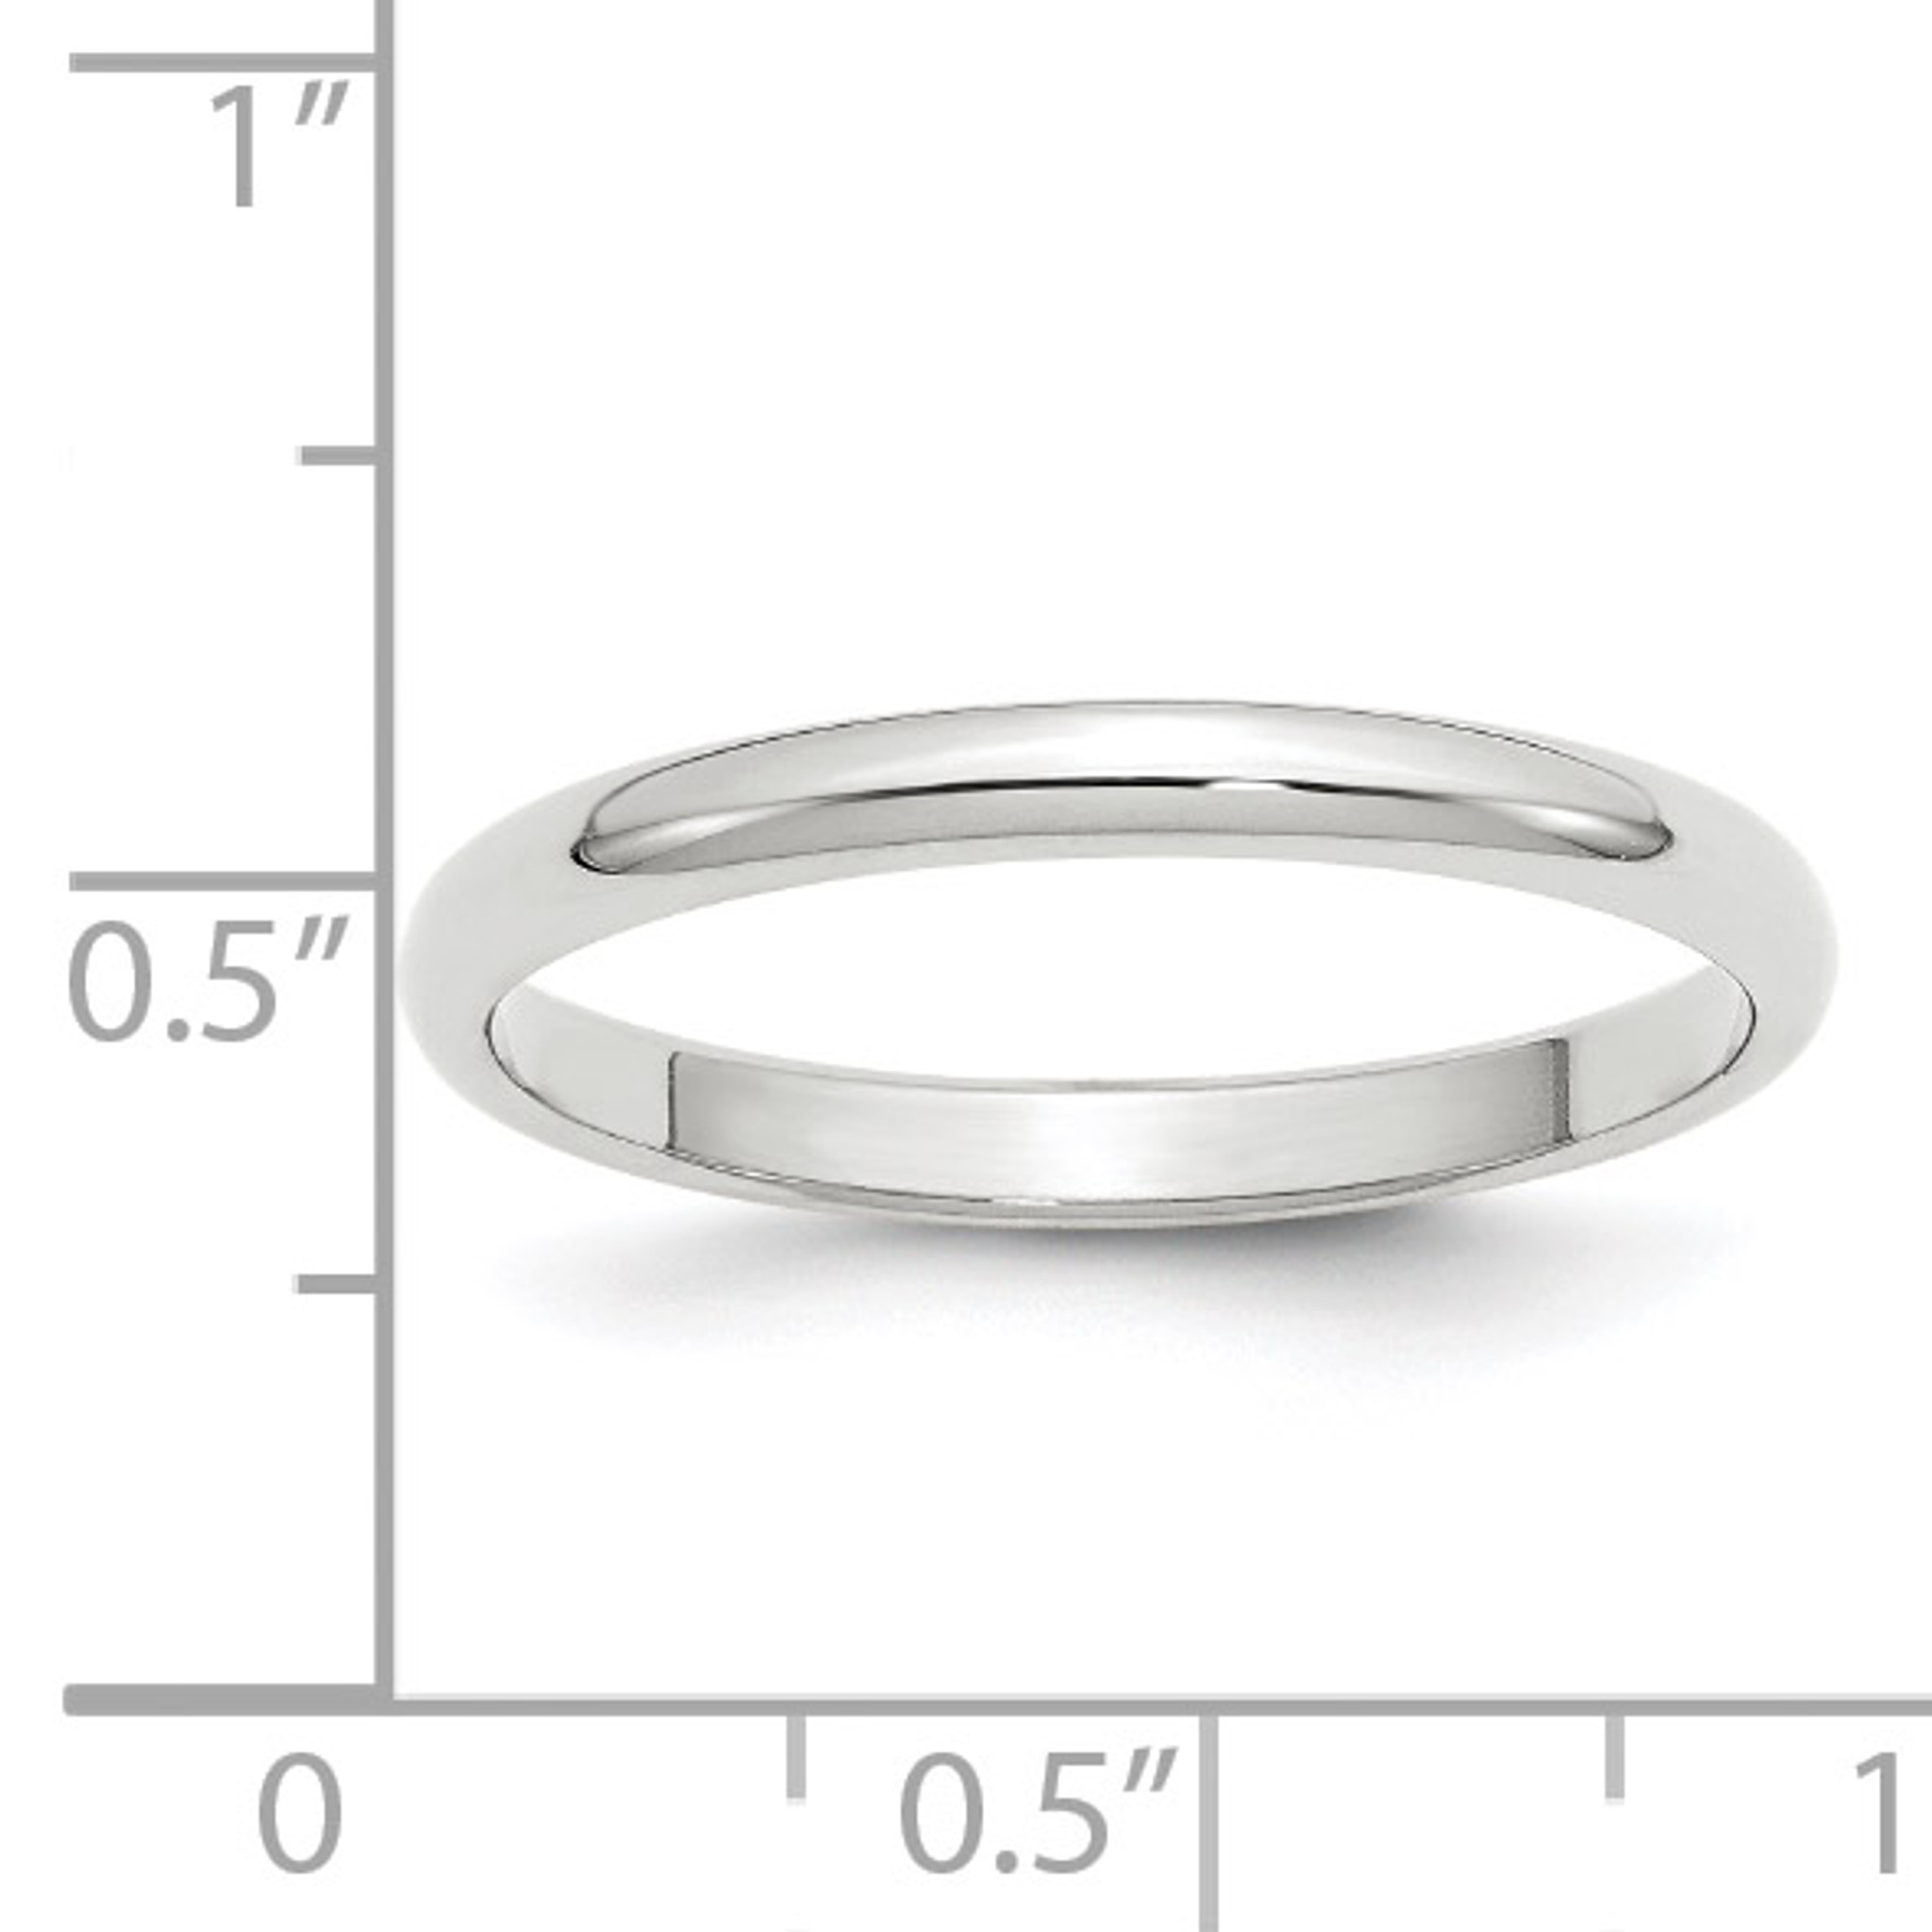 Tianyi Jewelers Grade Stainless Steel Ring Wedding Engagement Band with Brushed Top Price for 1 Pc